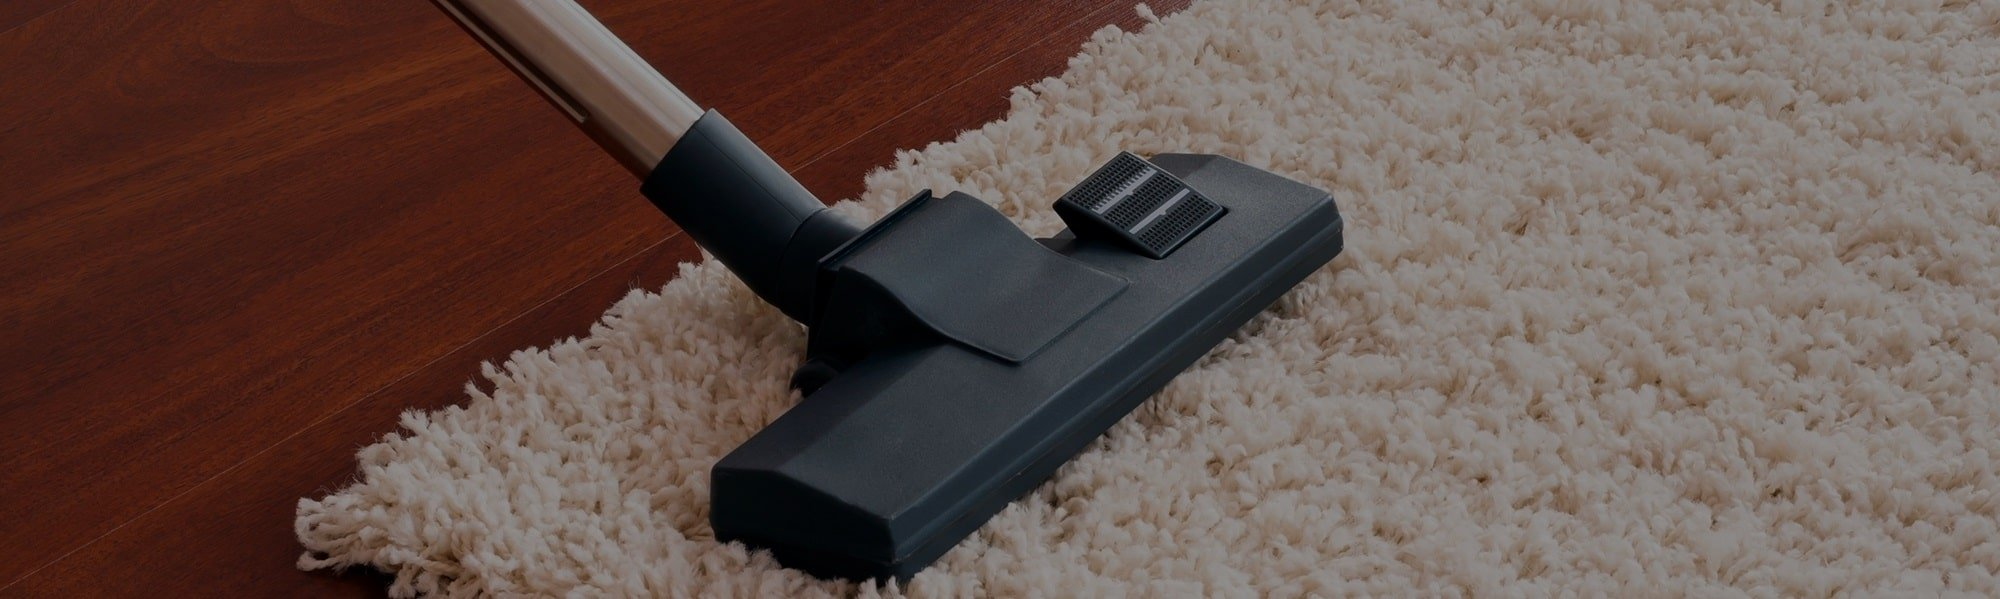 10 Best Vacuums for Shag Carpet May 2018 Ultimate Guide